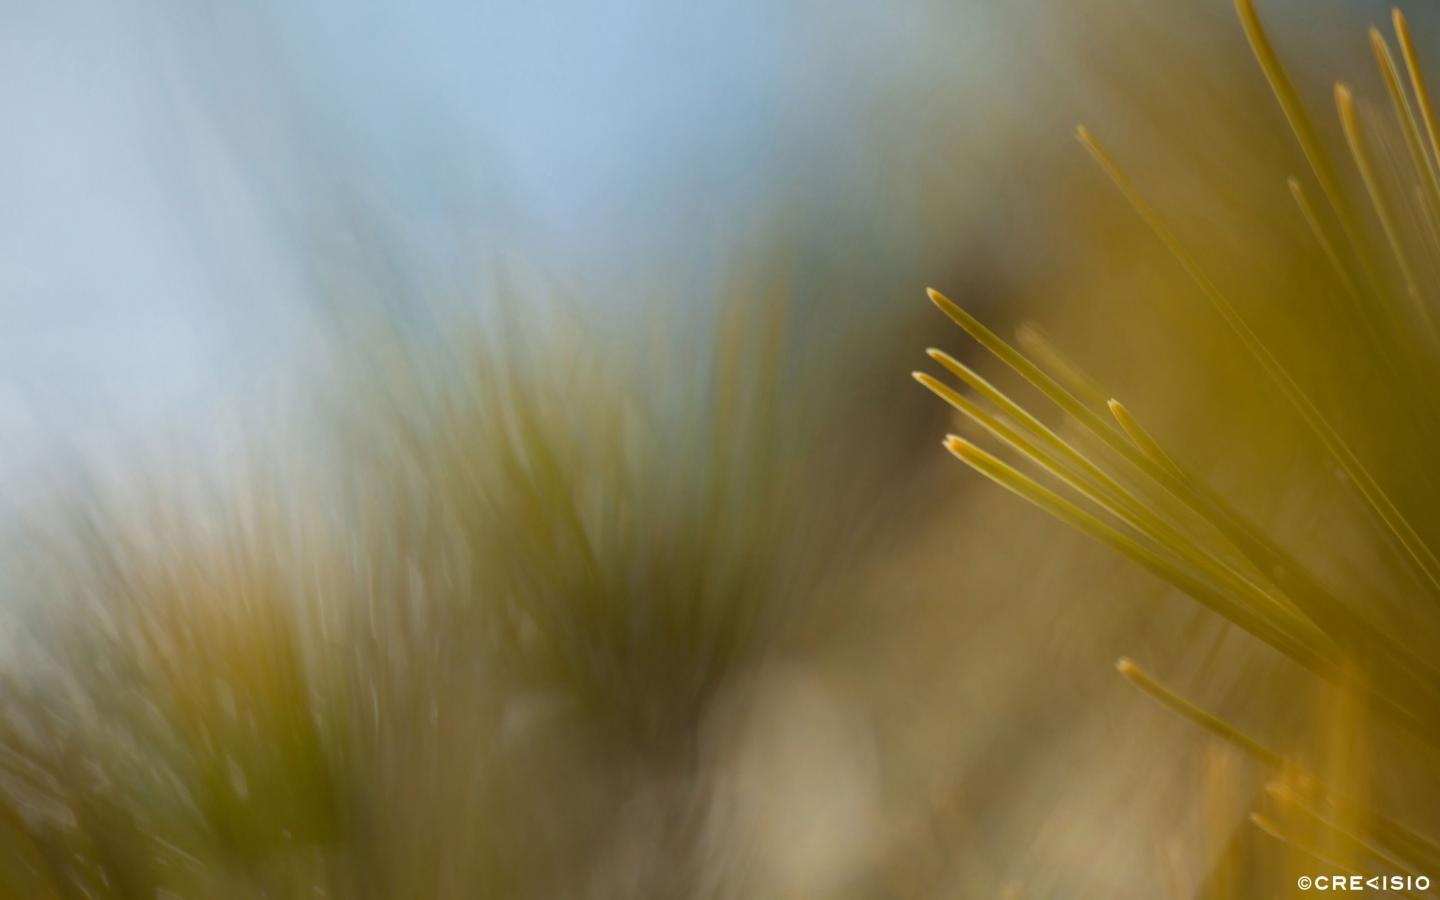 Blurred Bushes by Crevisio